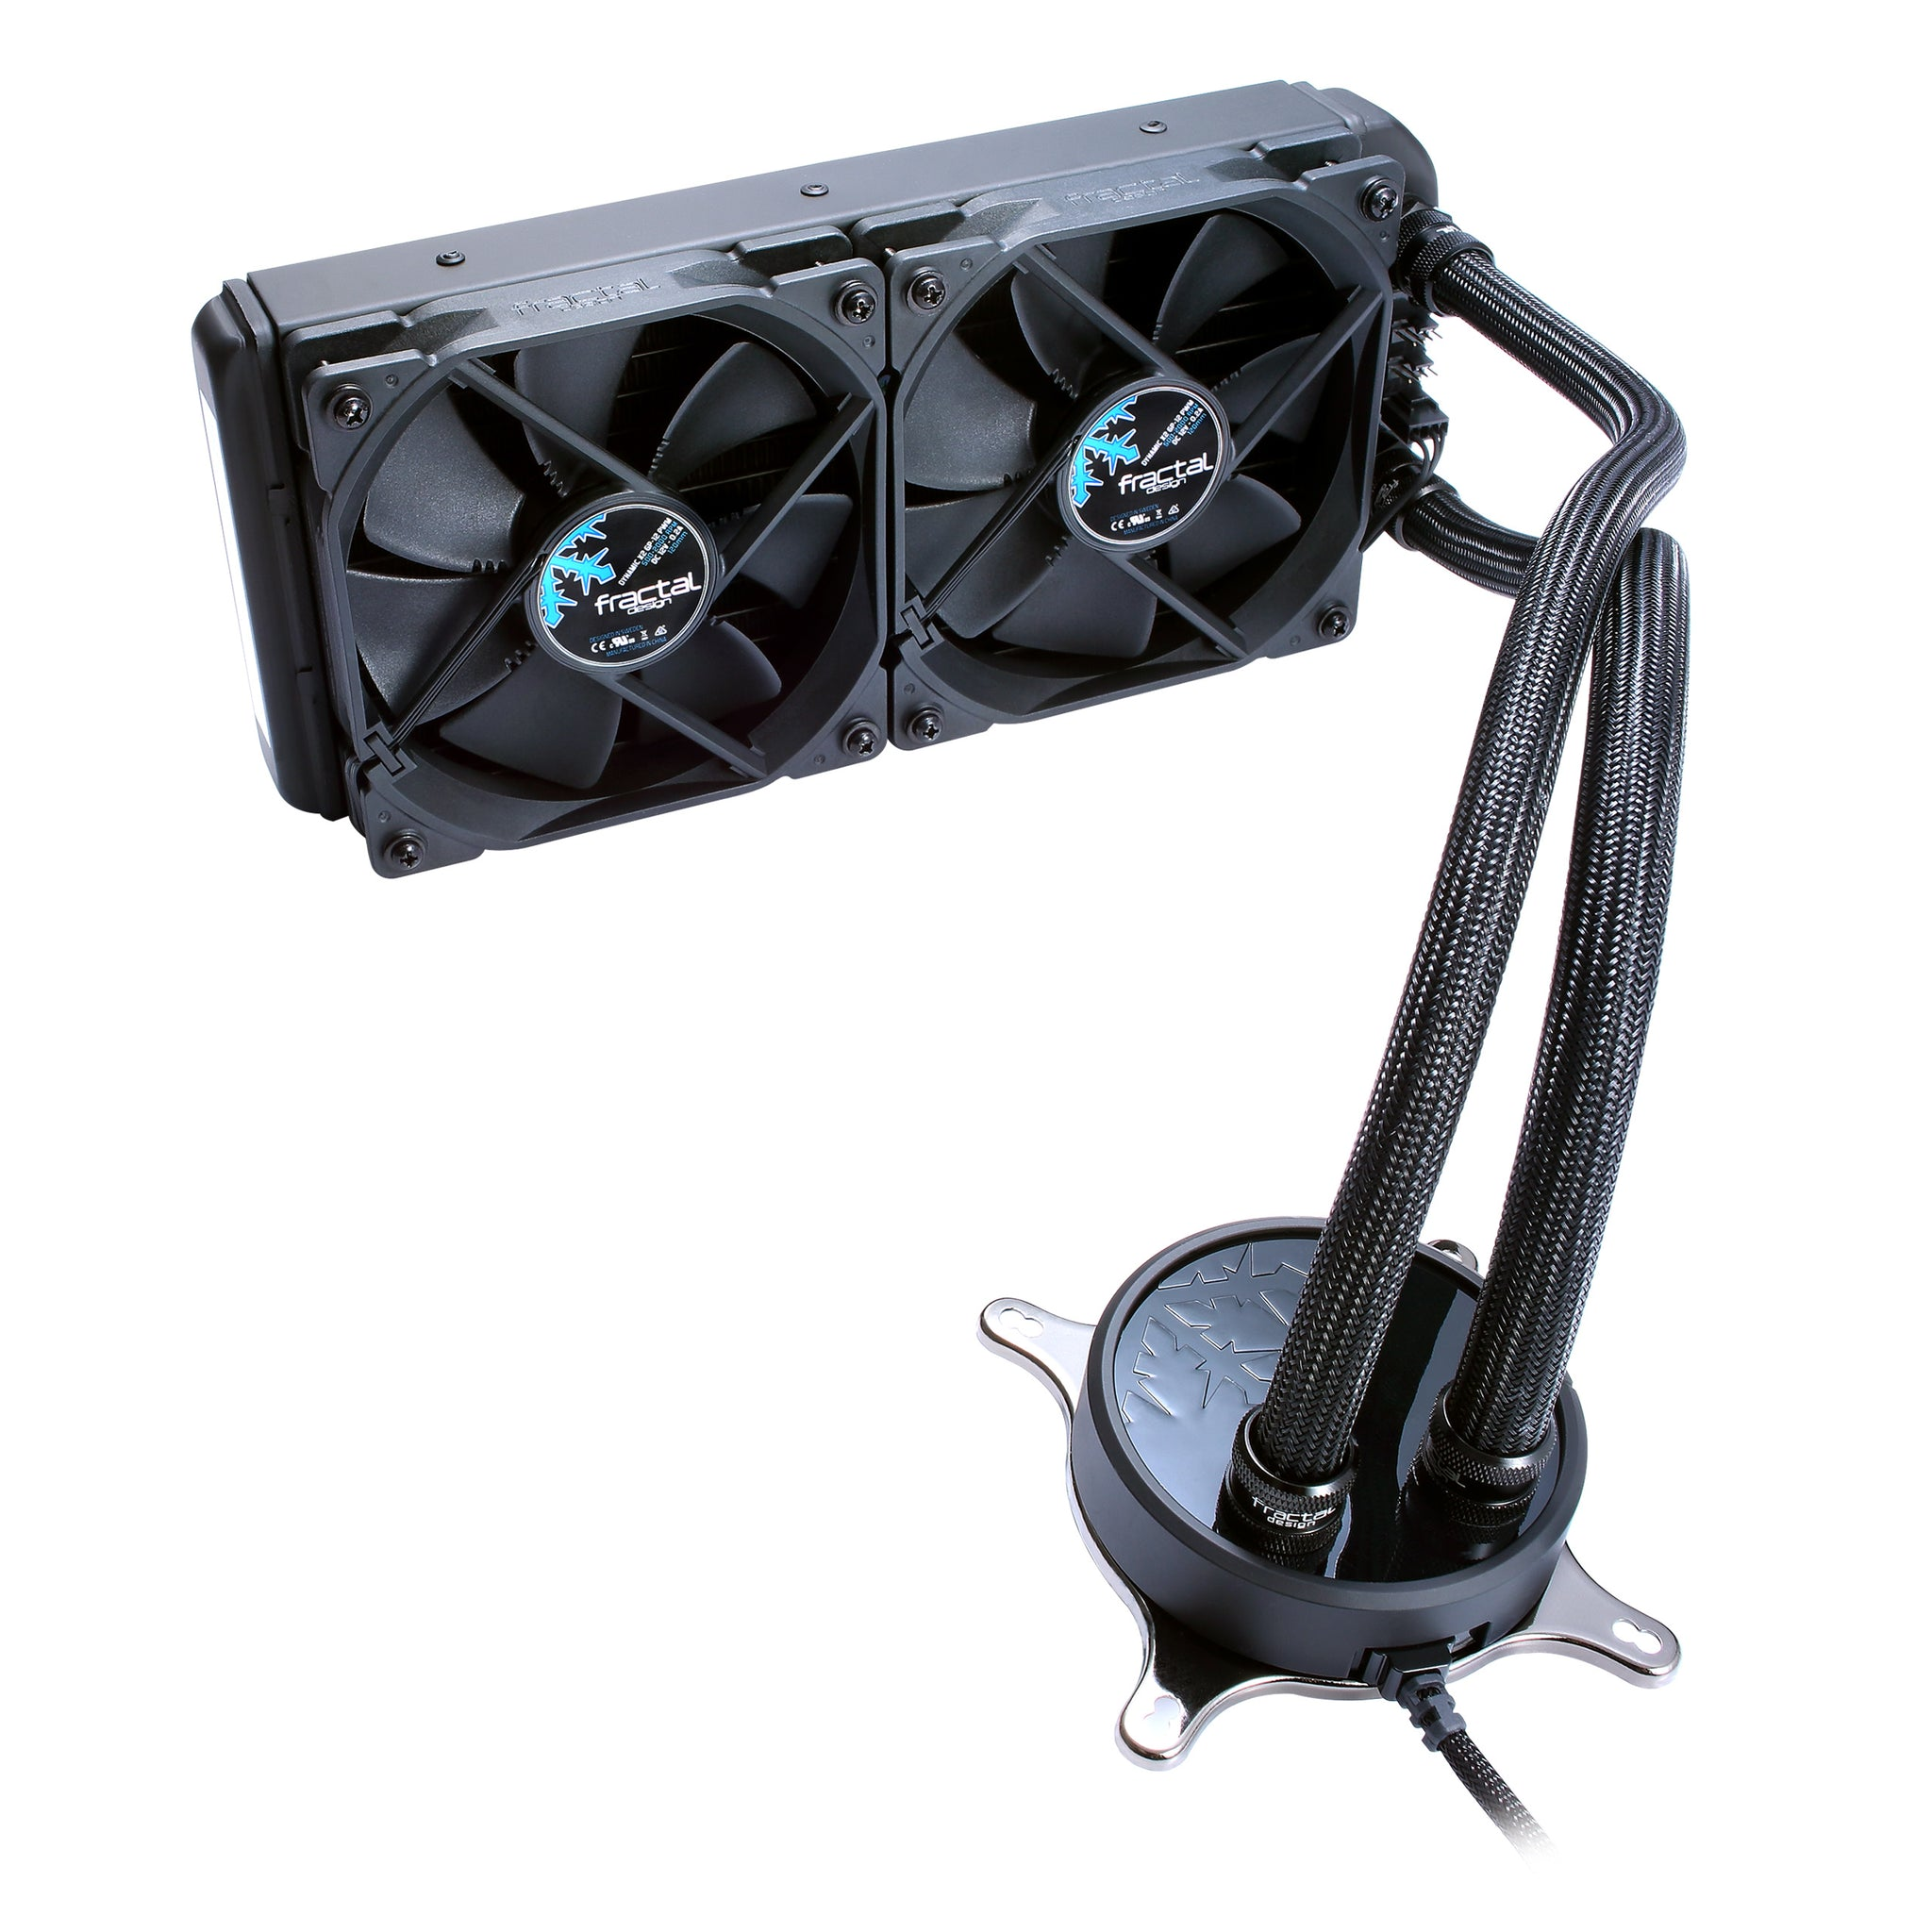 Celsius Water Cooling Unit S24 Blackout, Coldplate: 5th Gen, Intergrated Sound Damping, Fan:Dynamic X2 Gp 12 Pwm, Warranty:5yr